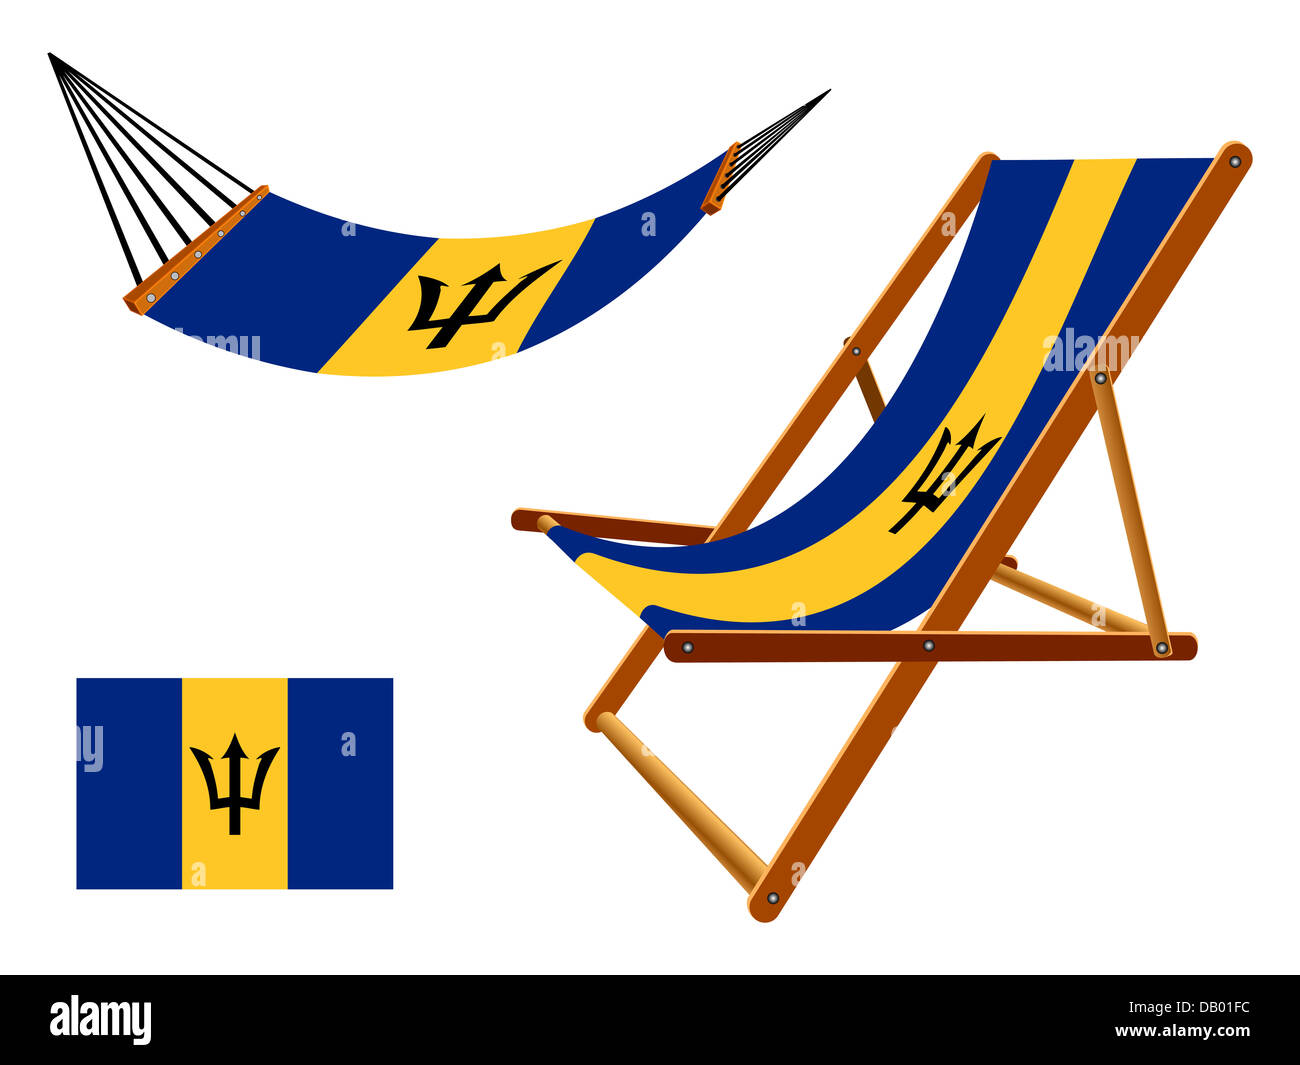 barbados hammock and deck chair set against white background abstract vector art illustration barbados hammock and deck chair set against white background stock      rh   alamy